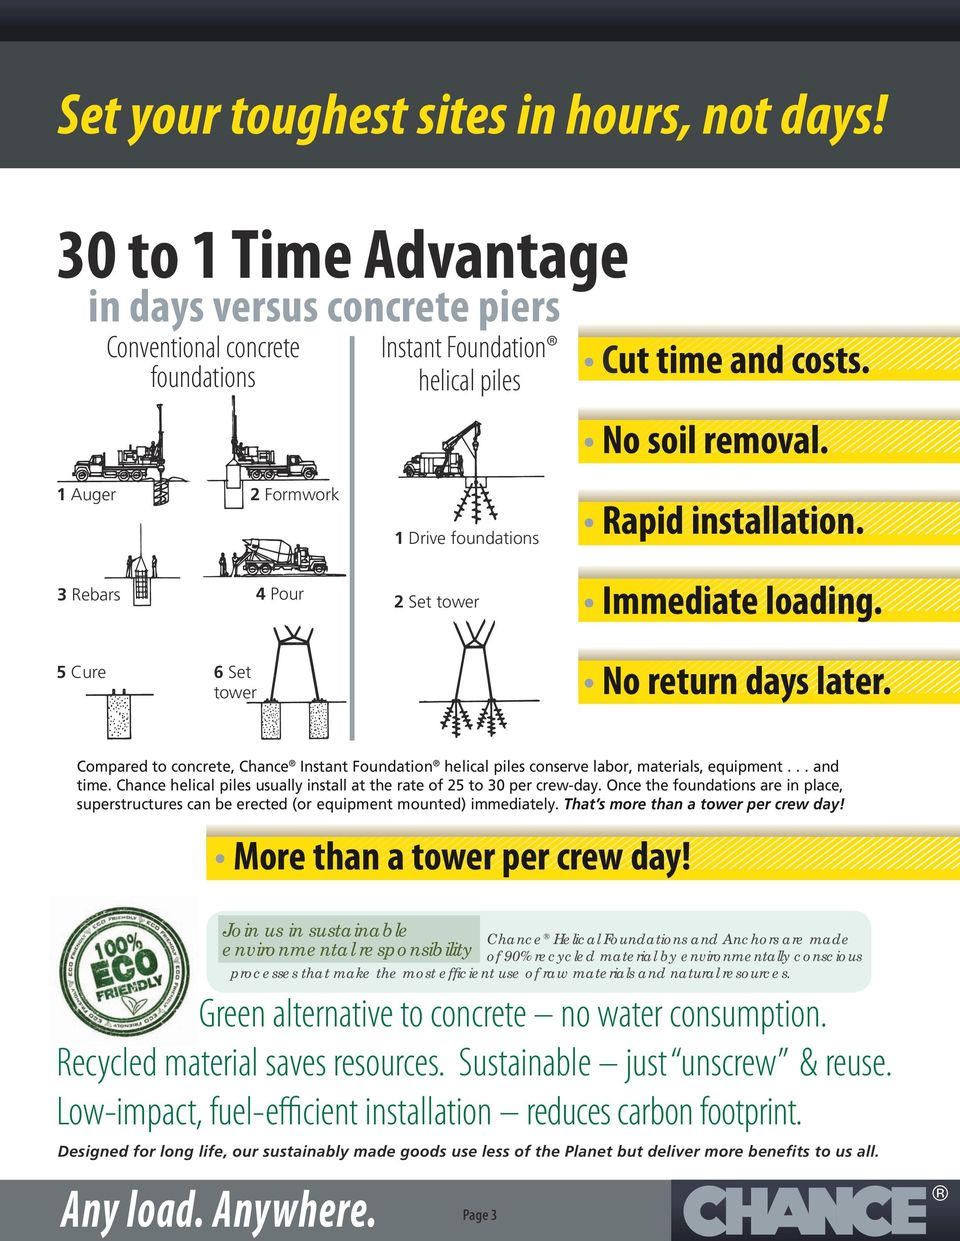 Compared to concrete, Chance Instant Foundation helical piles conserve labor, materials, equipment... and time. Chance helical piles usually install at the rate of 25 to 30 per crew-day.